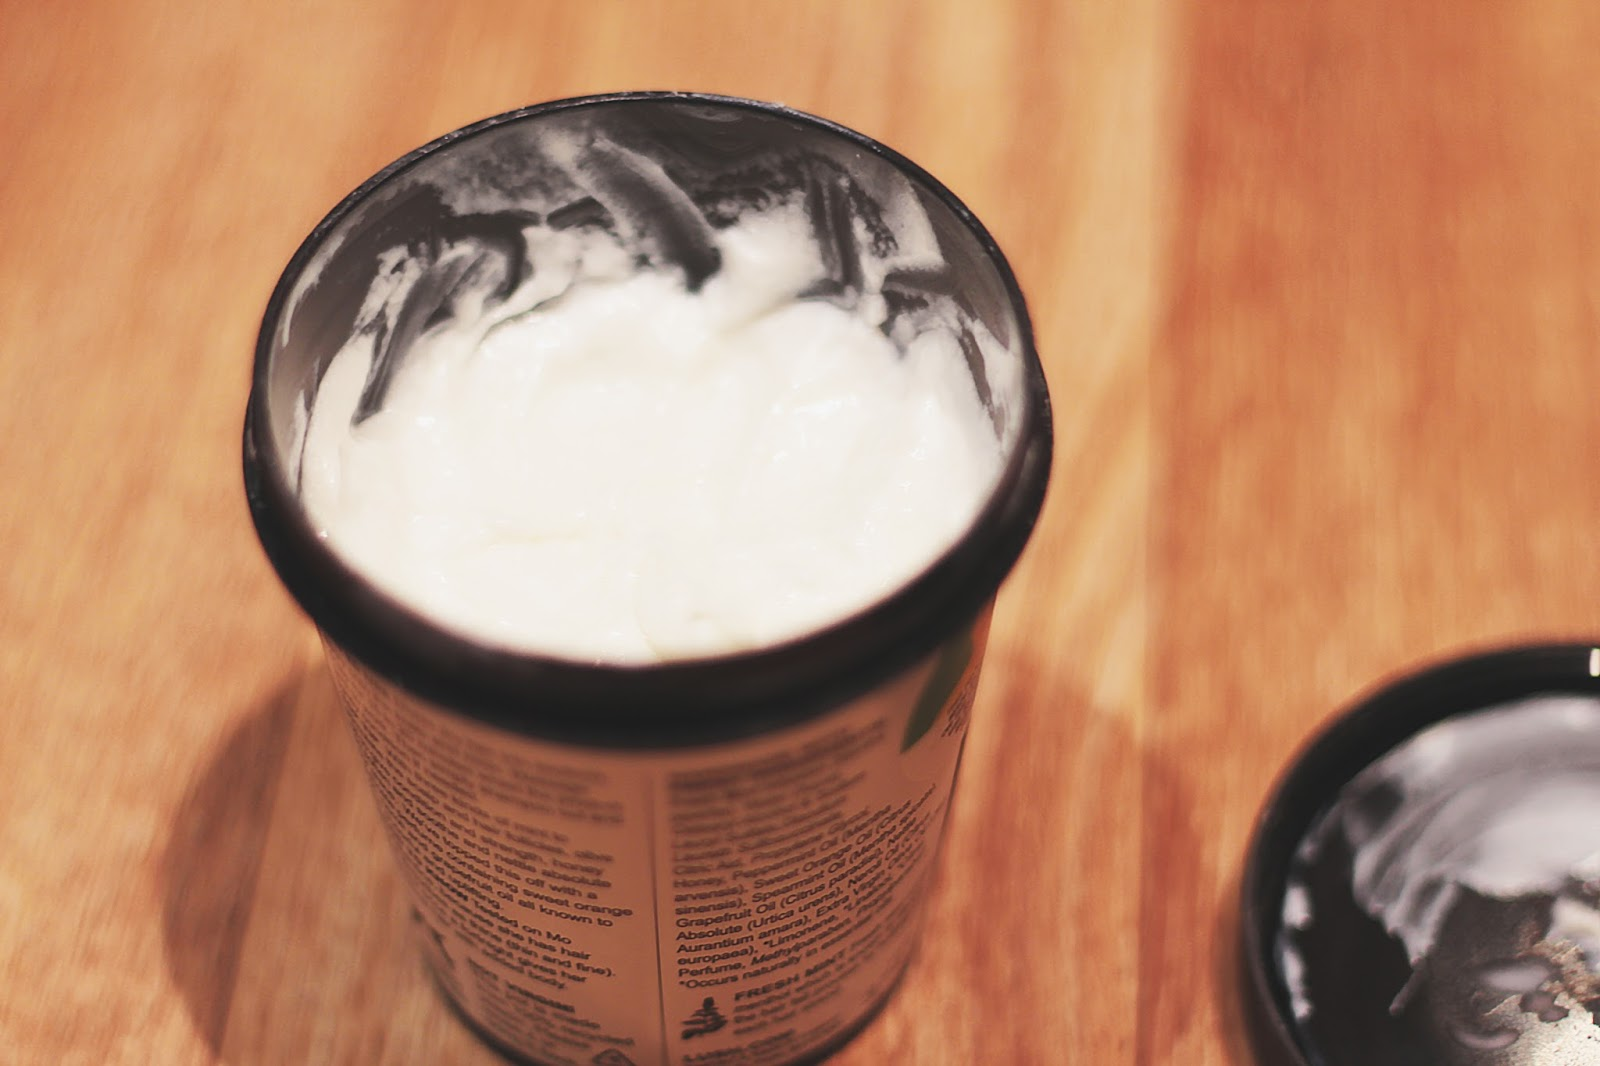 Lush ROOTS hair scalp treatment product close up